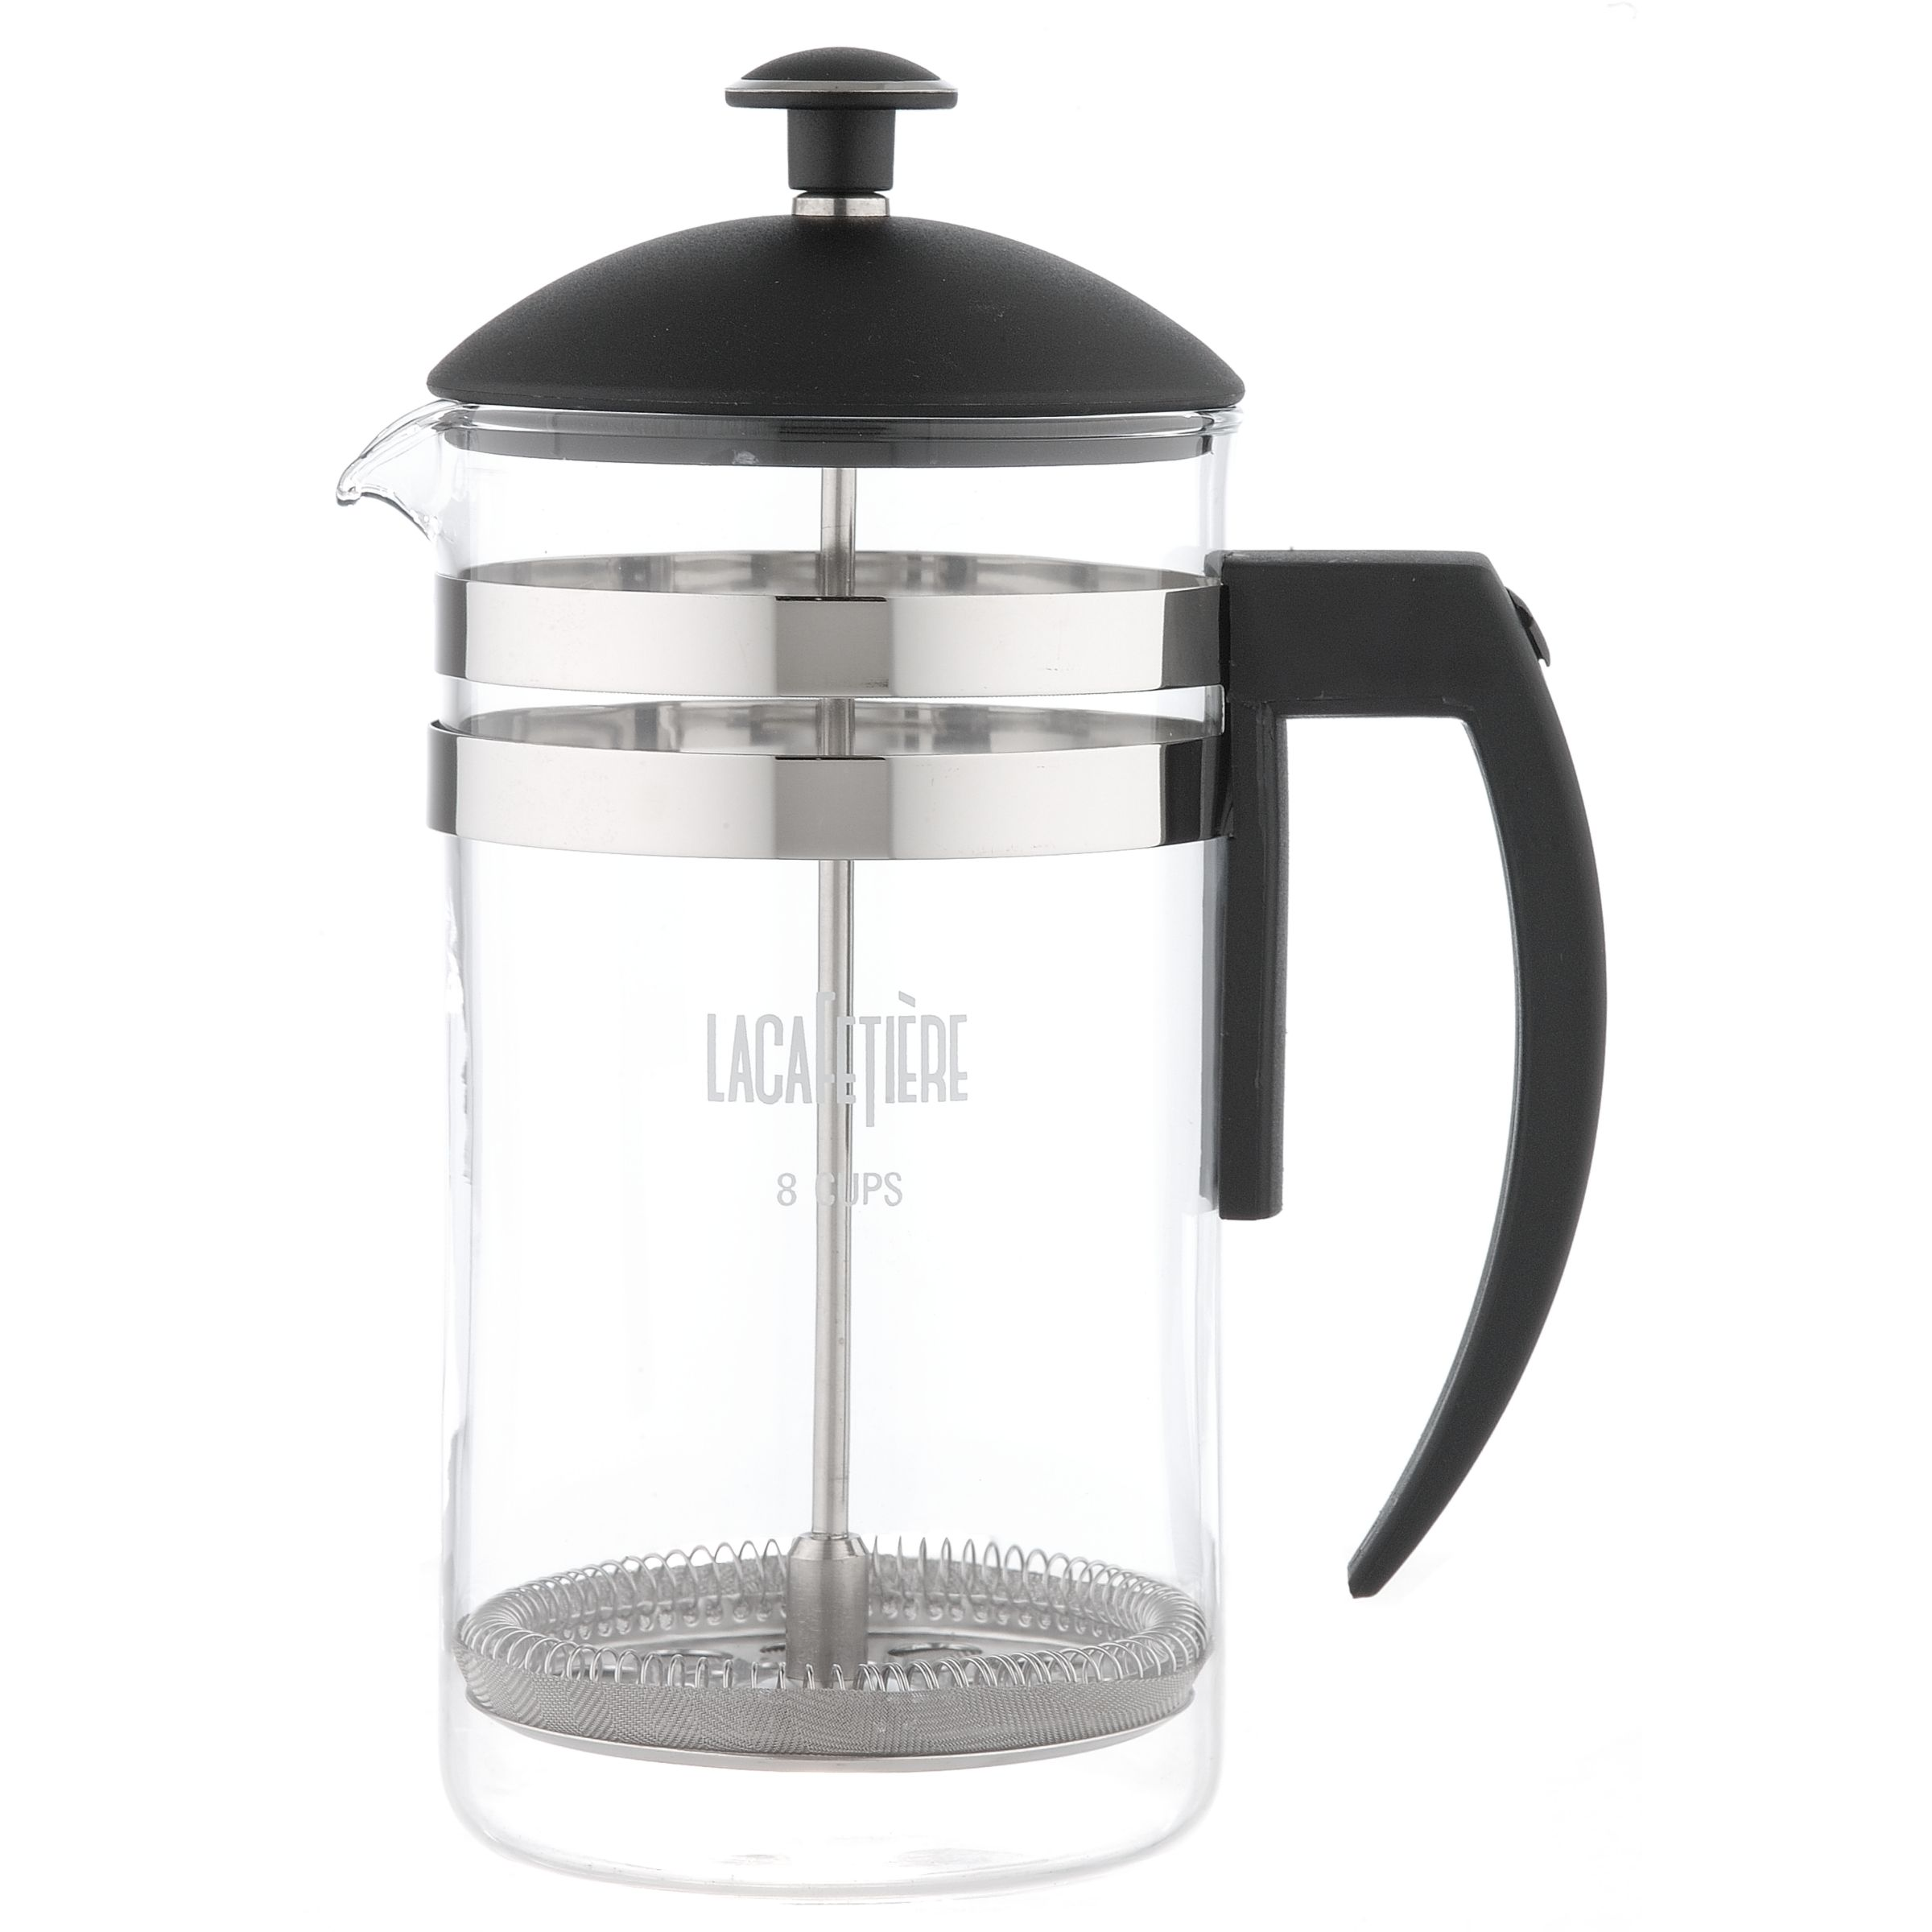 Aerobie Aeropress Coffee Maker John Lewis : cafetiere